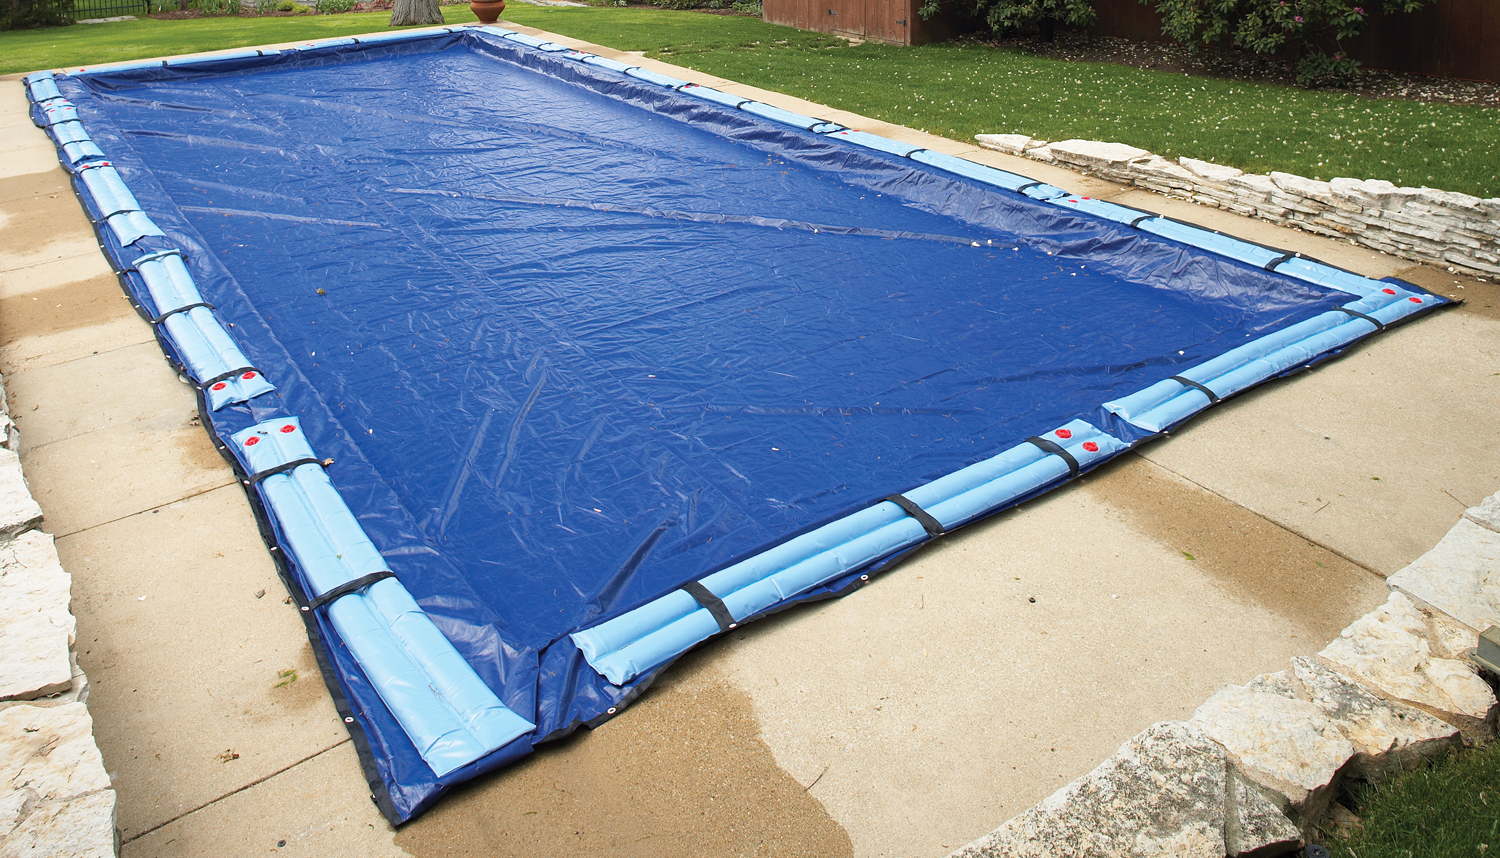 Winter Pool Cover Inground 20x40 Ft Rectangle Arctic Armor 15 Yr Warranty Ebay